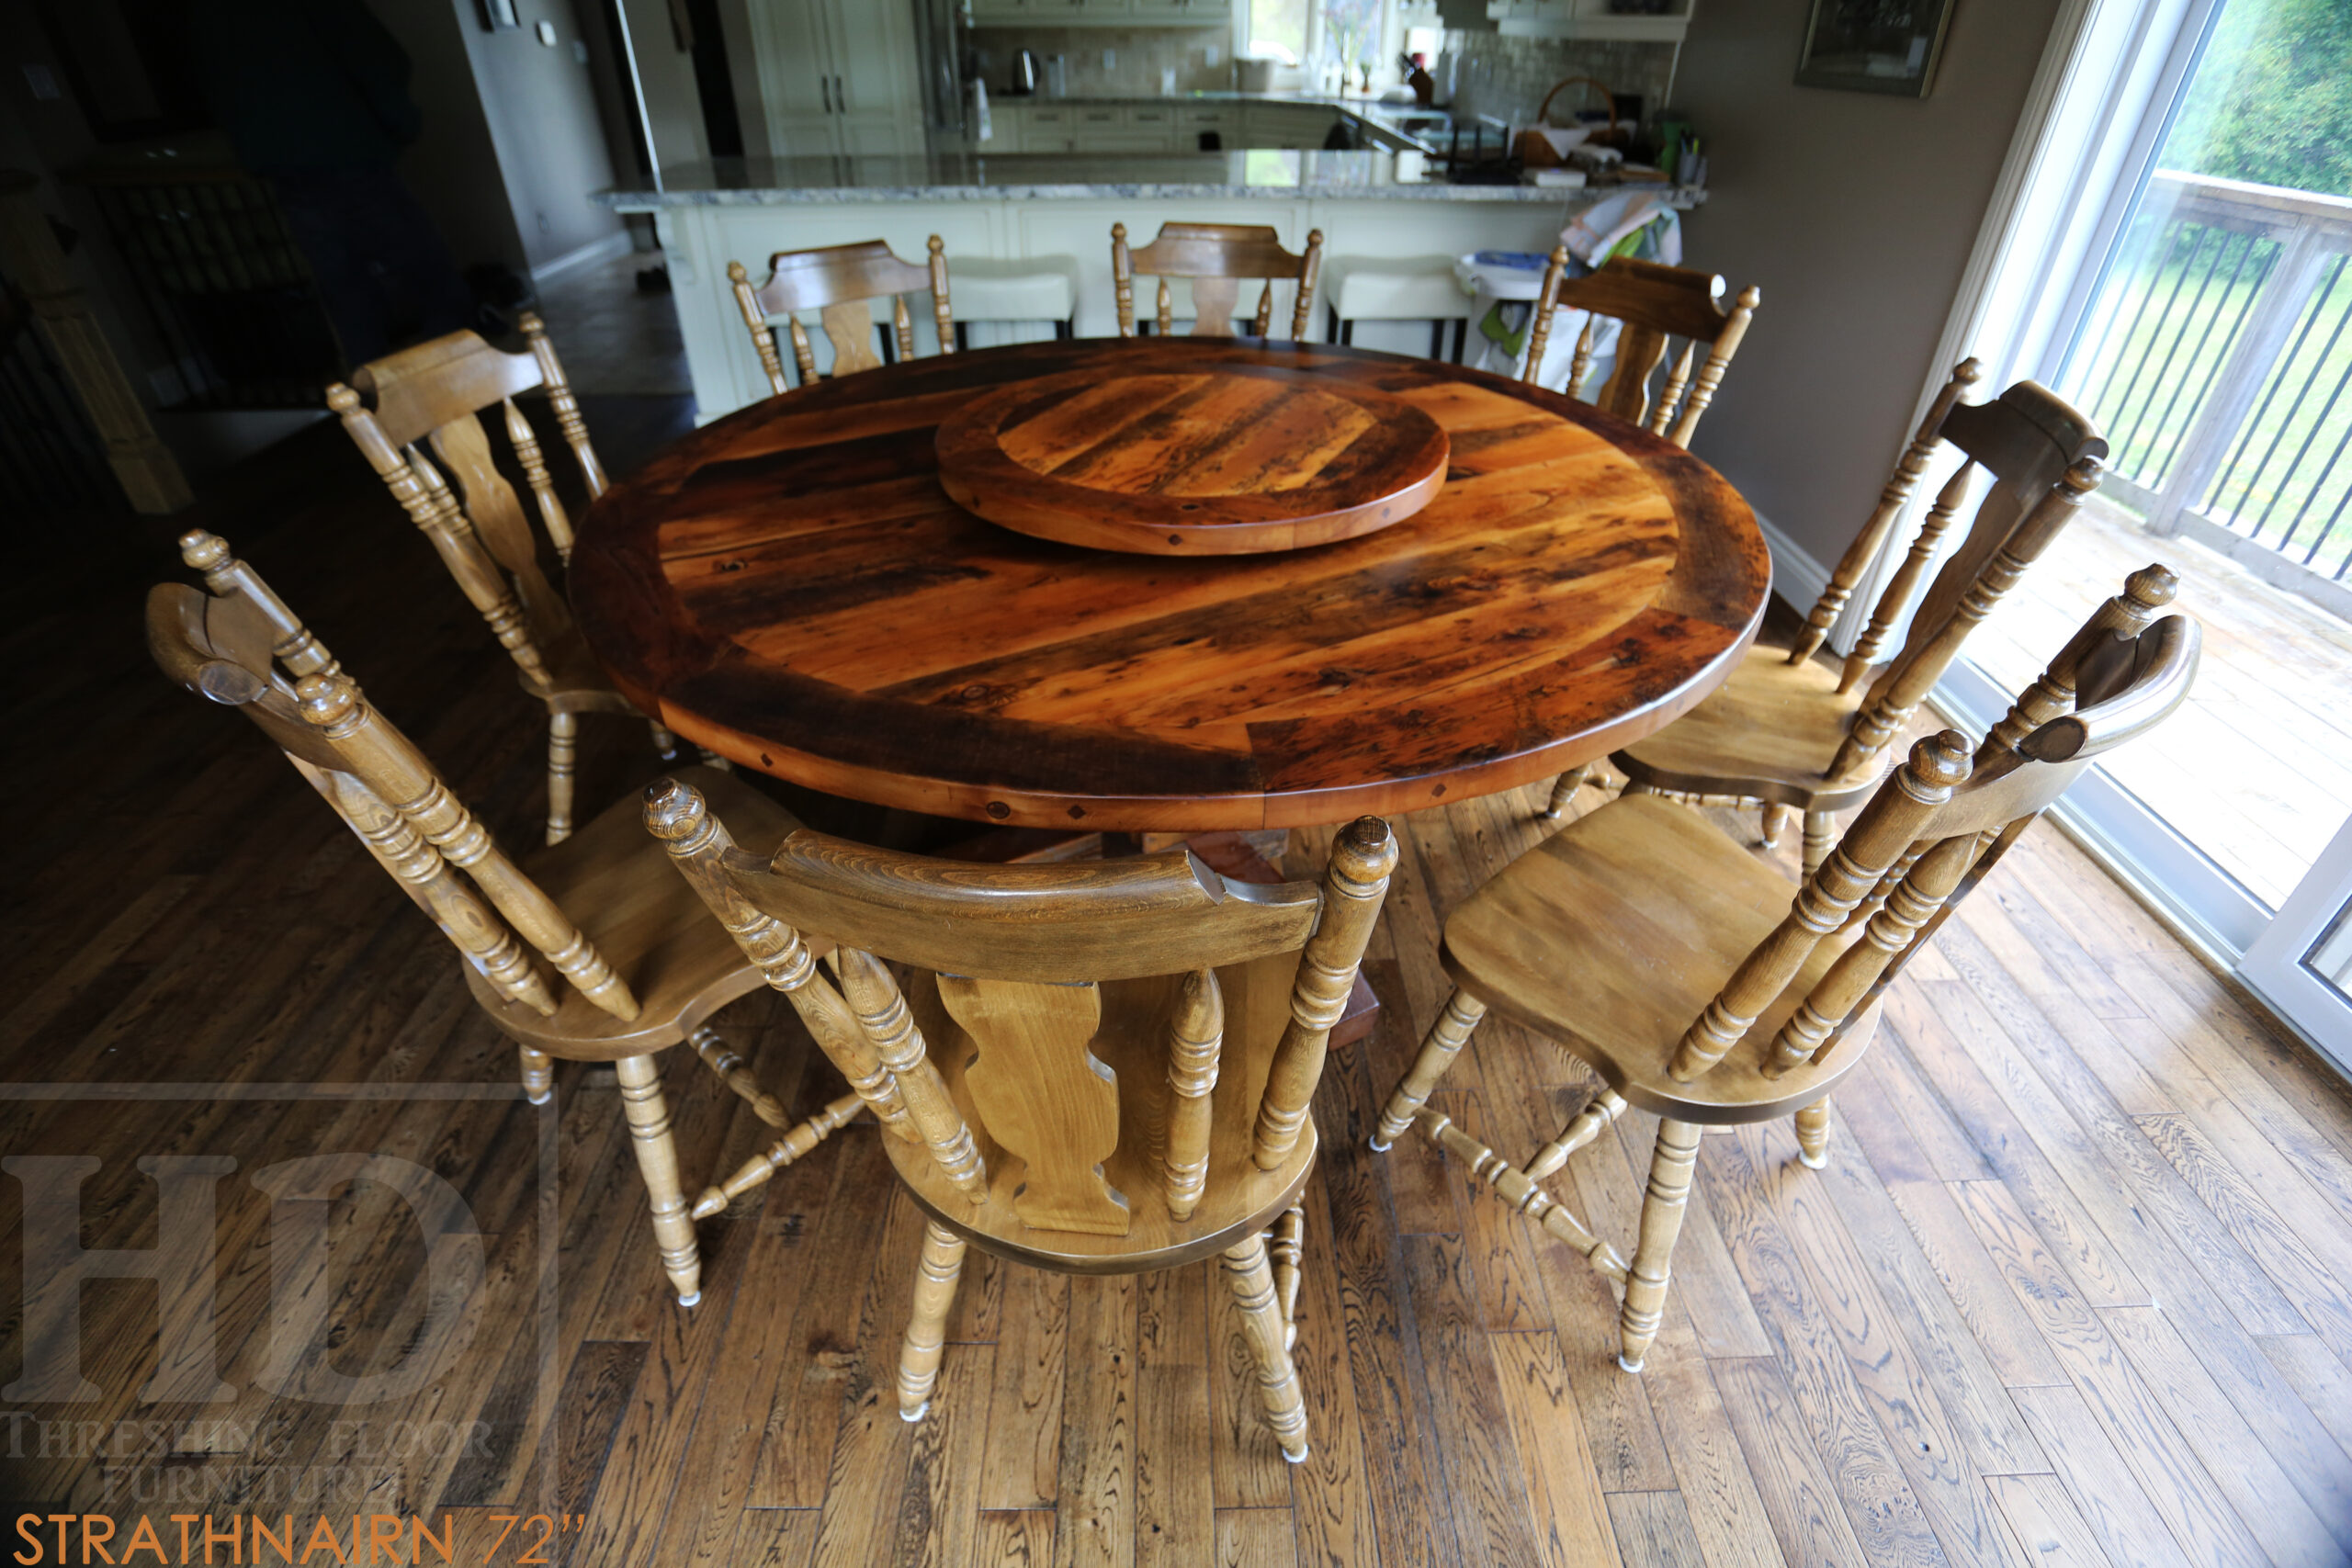 """72"""" Round Ontario Barnwood Table we made for a Meaford, Ontario home - Hand-Hewn Beam Post Base - 2"""" Hemlock Threshing Floor Top - Original edges & distressing maintained - Premium epoxy + matte polyurethane finish - [Matching] 32"""" Round Lazy Susan - www.table.ca"""